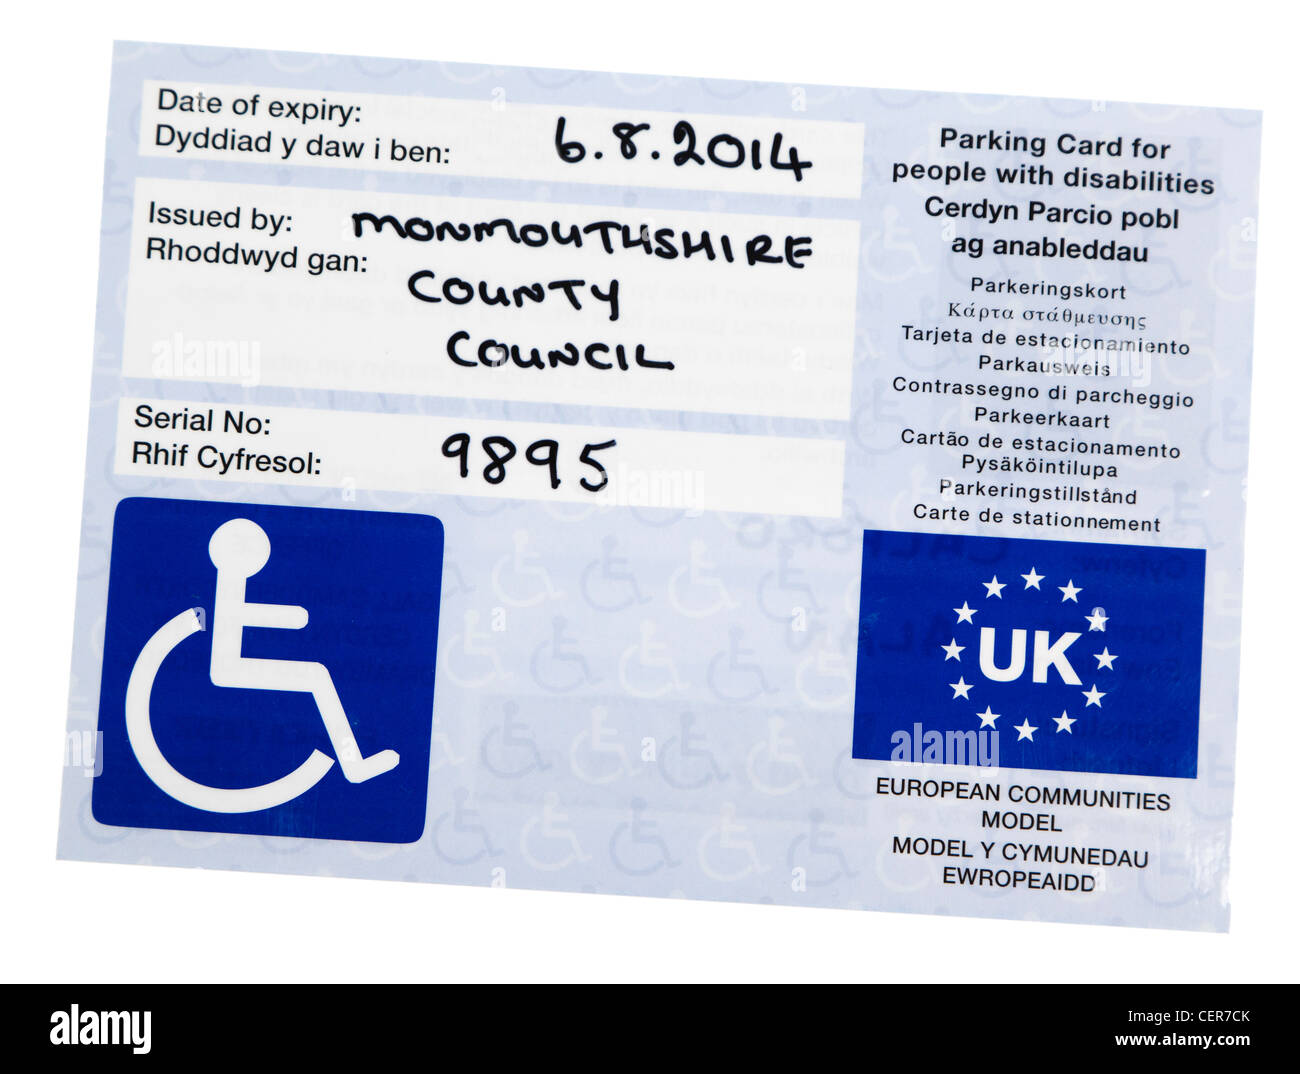 Example pf blue badge issued for parking permission for people with disabilities, UK - Stock Image